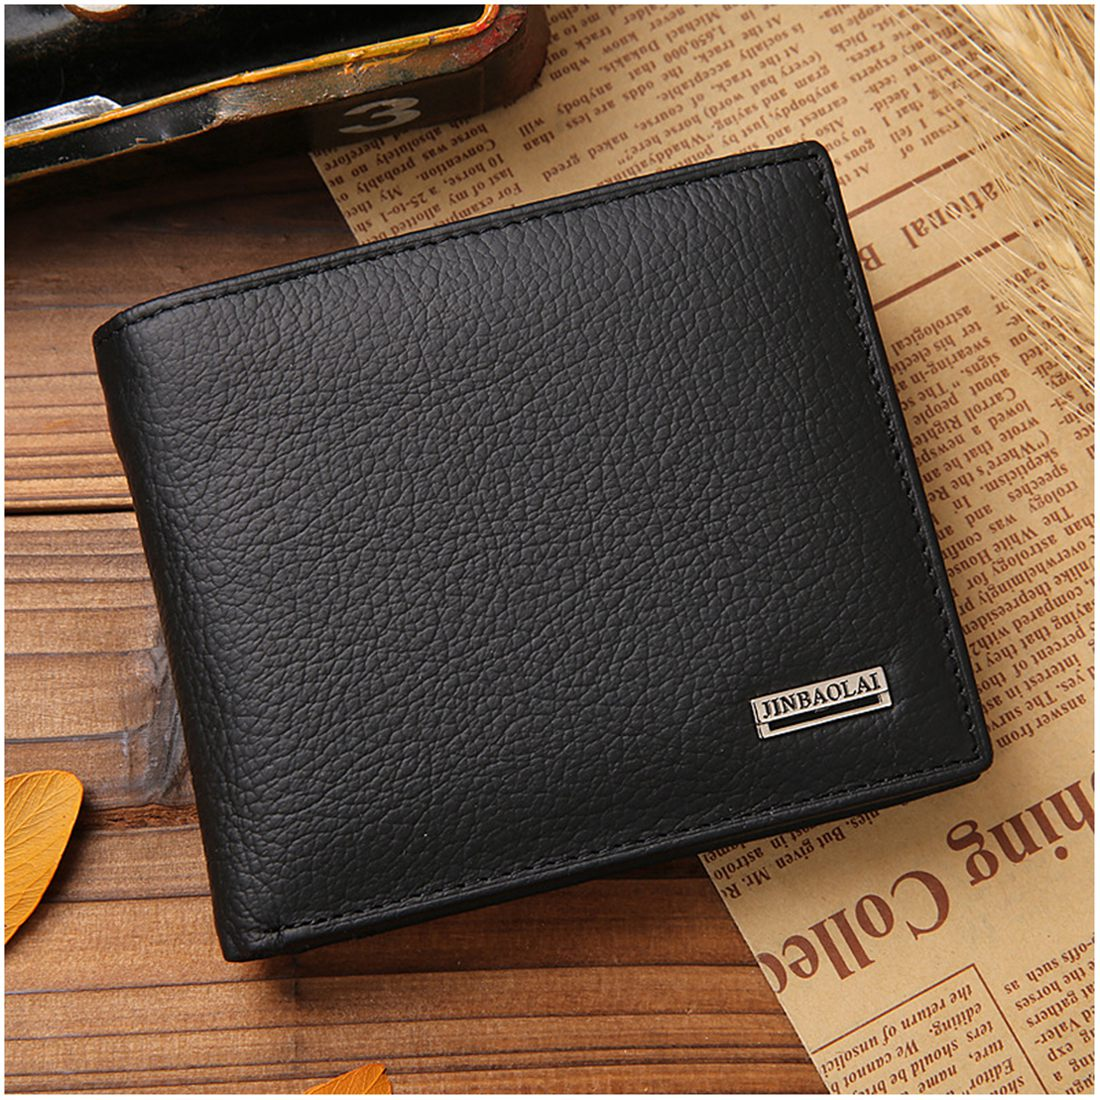 JINBAOLAI Small Short Leather Mens Wallet Male Wallet Bag Wallet Vallet Card Money Persian world Wallet